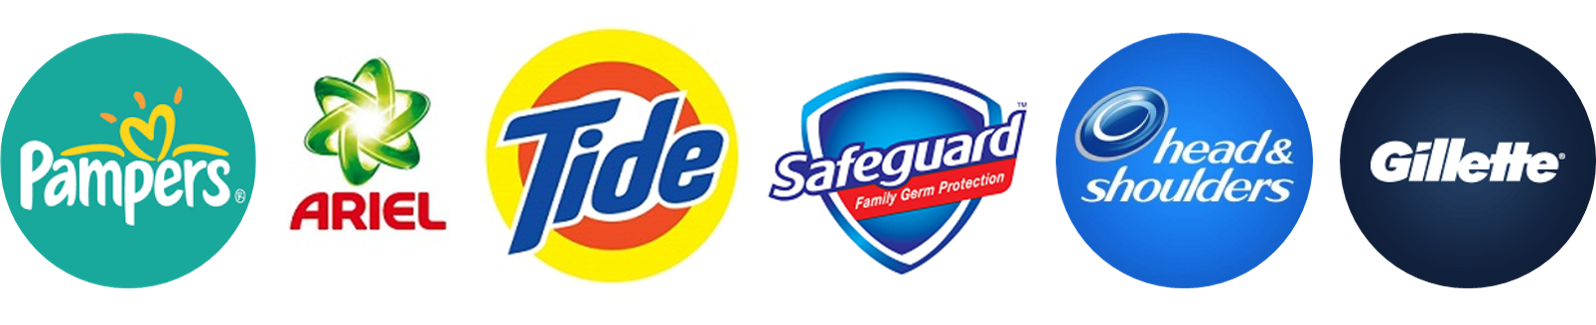 P&G in the Philippines.